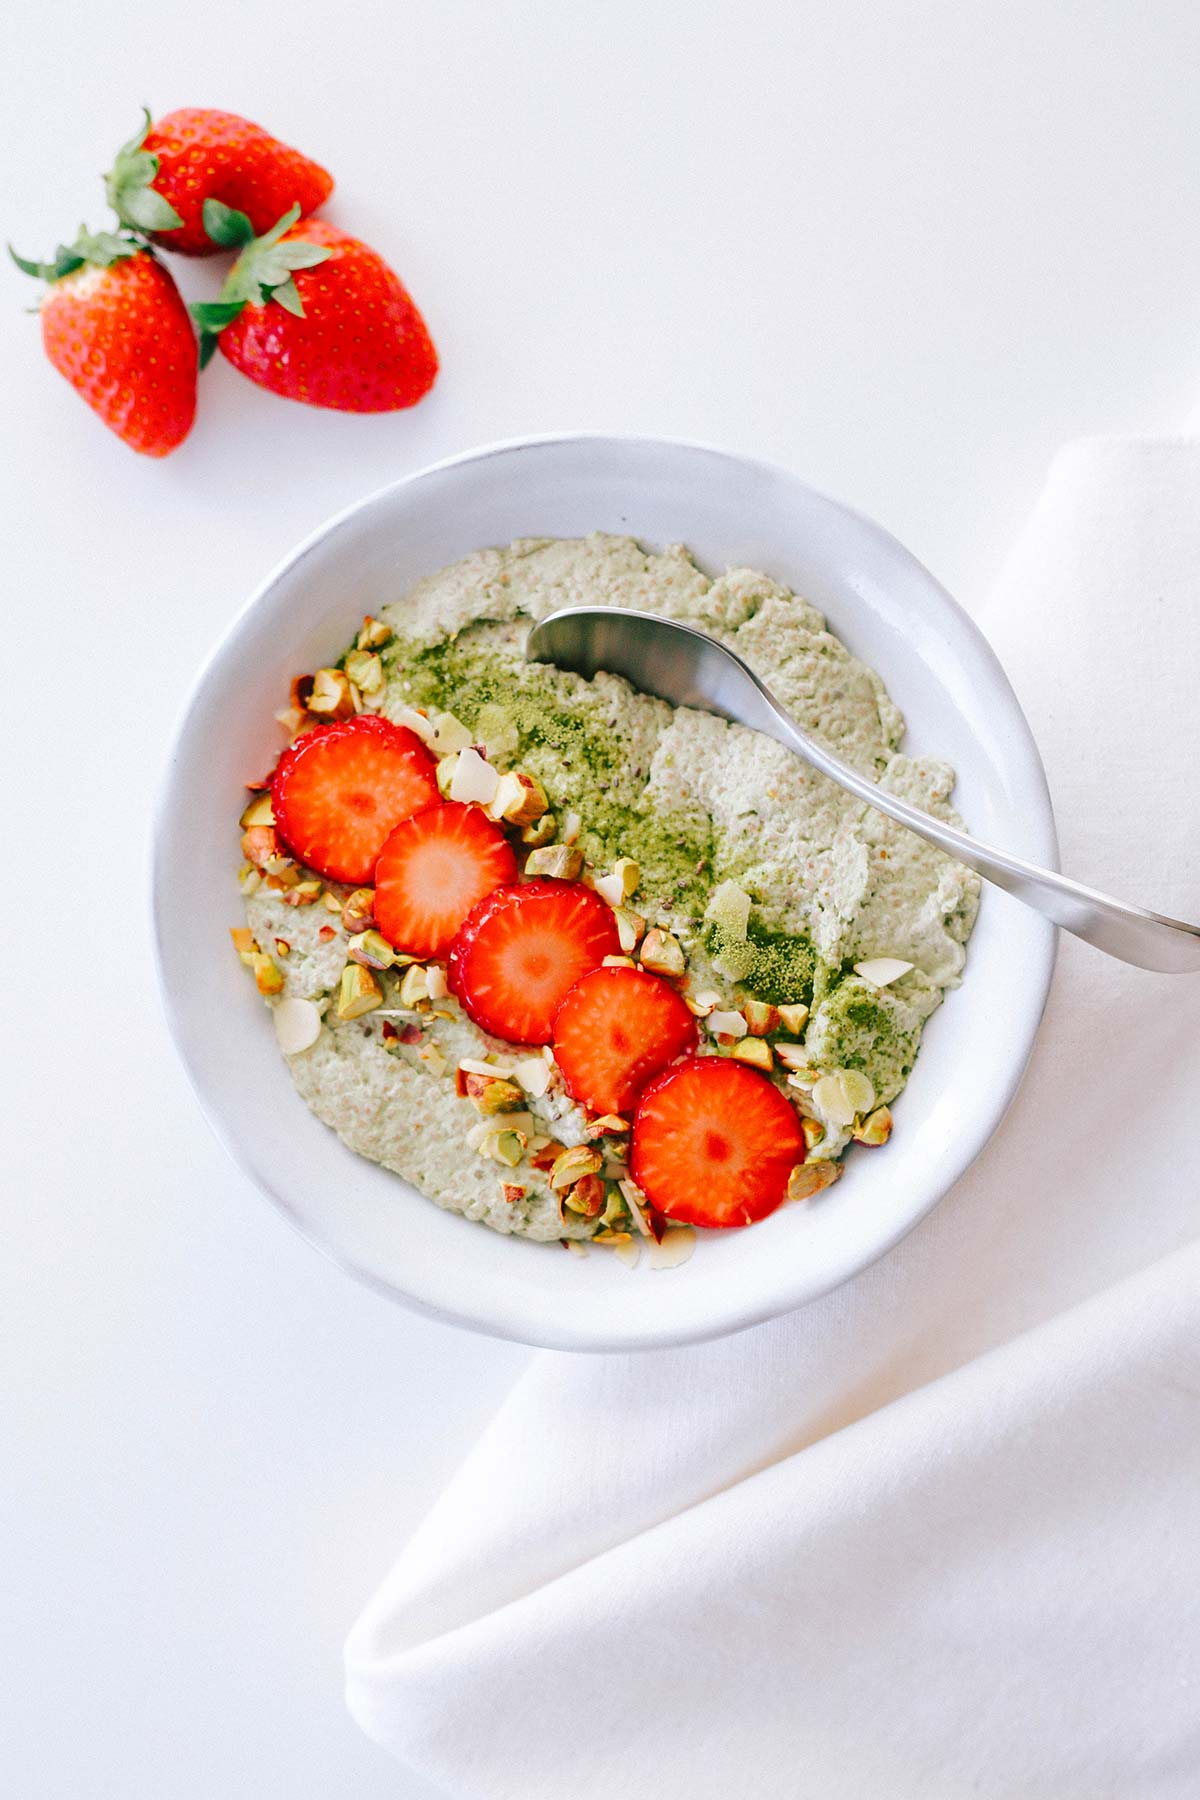 Chia Seed Pudding Whole Foods